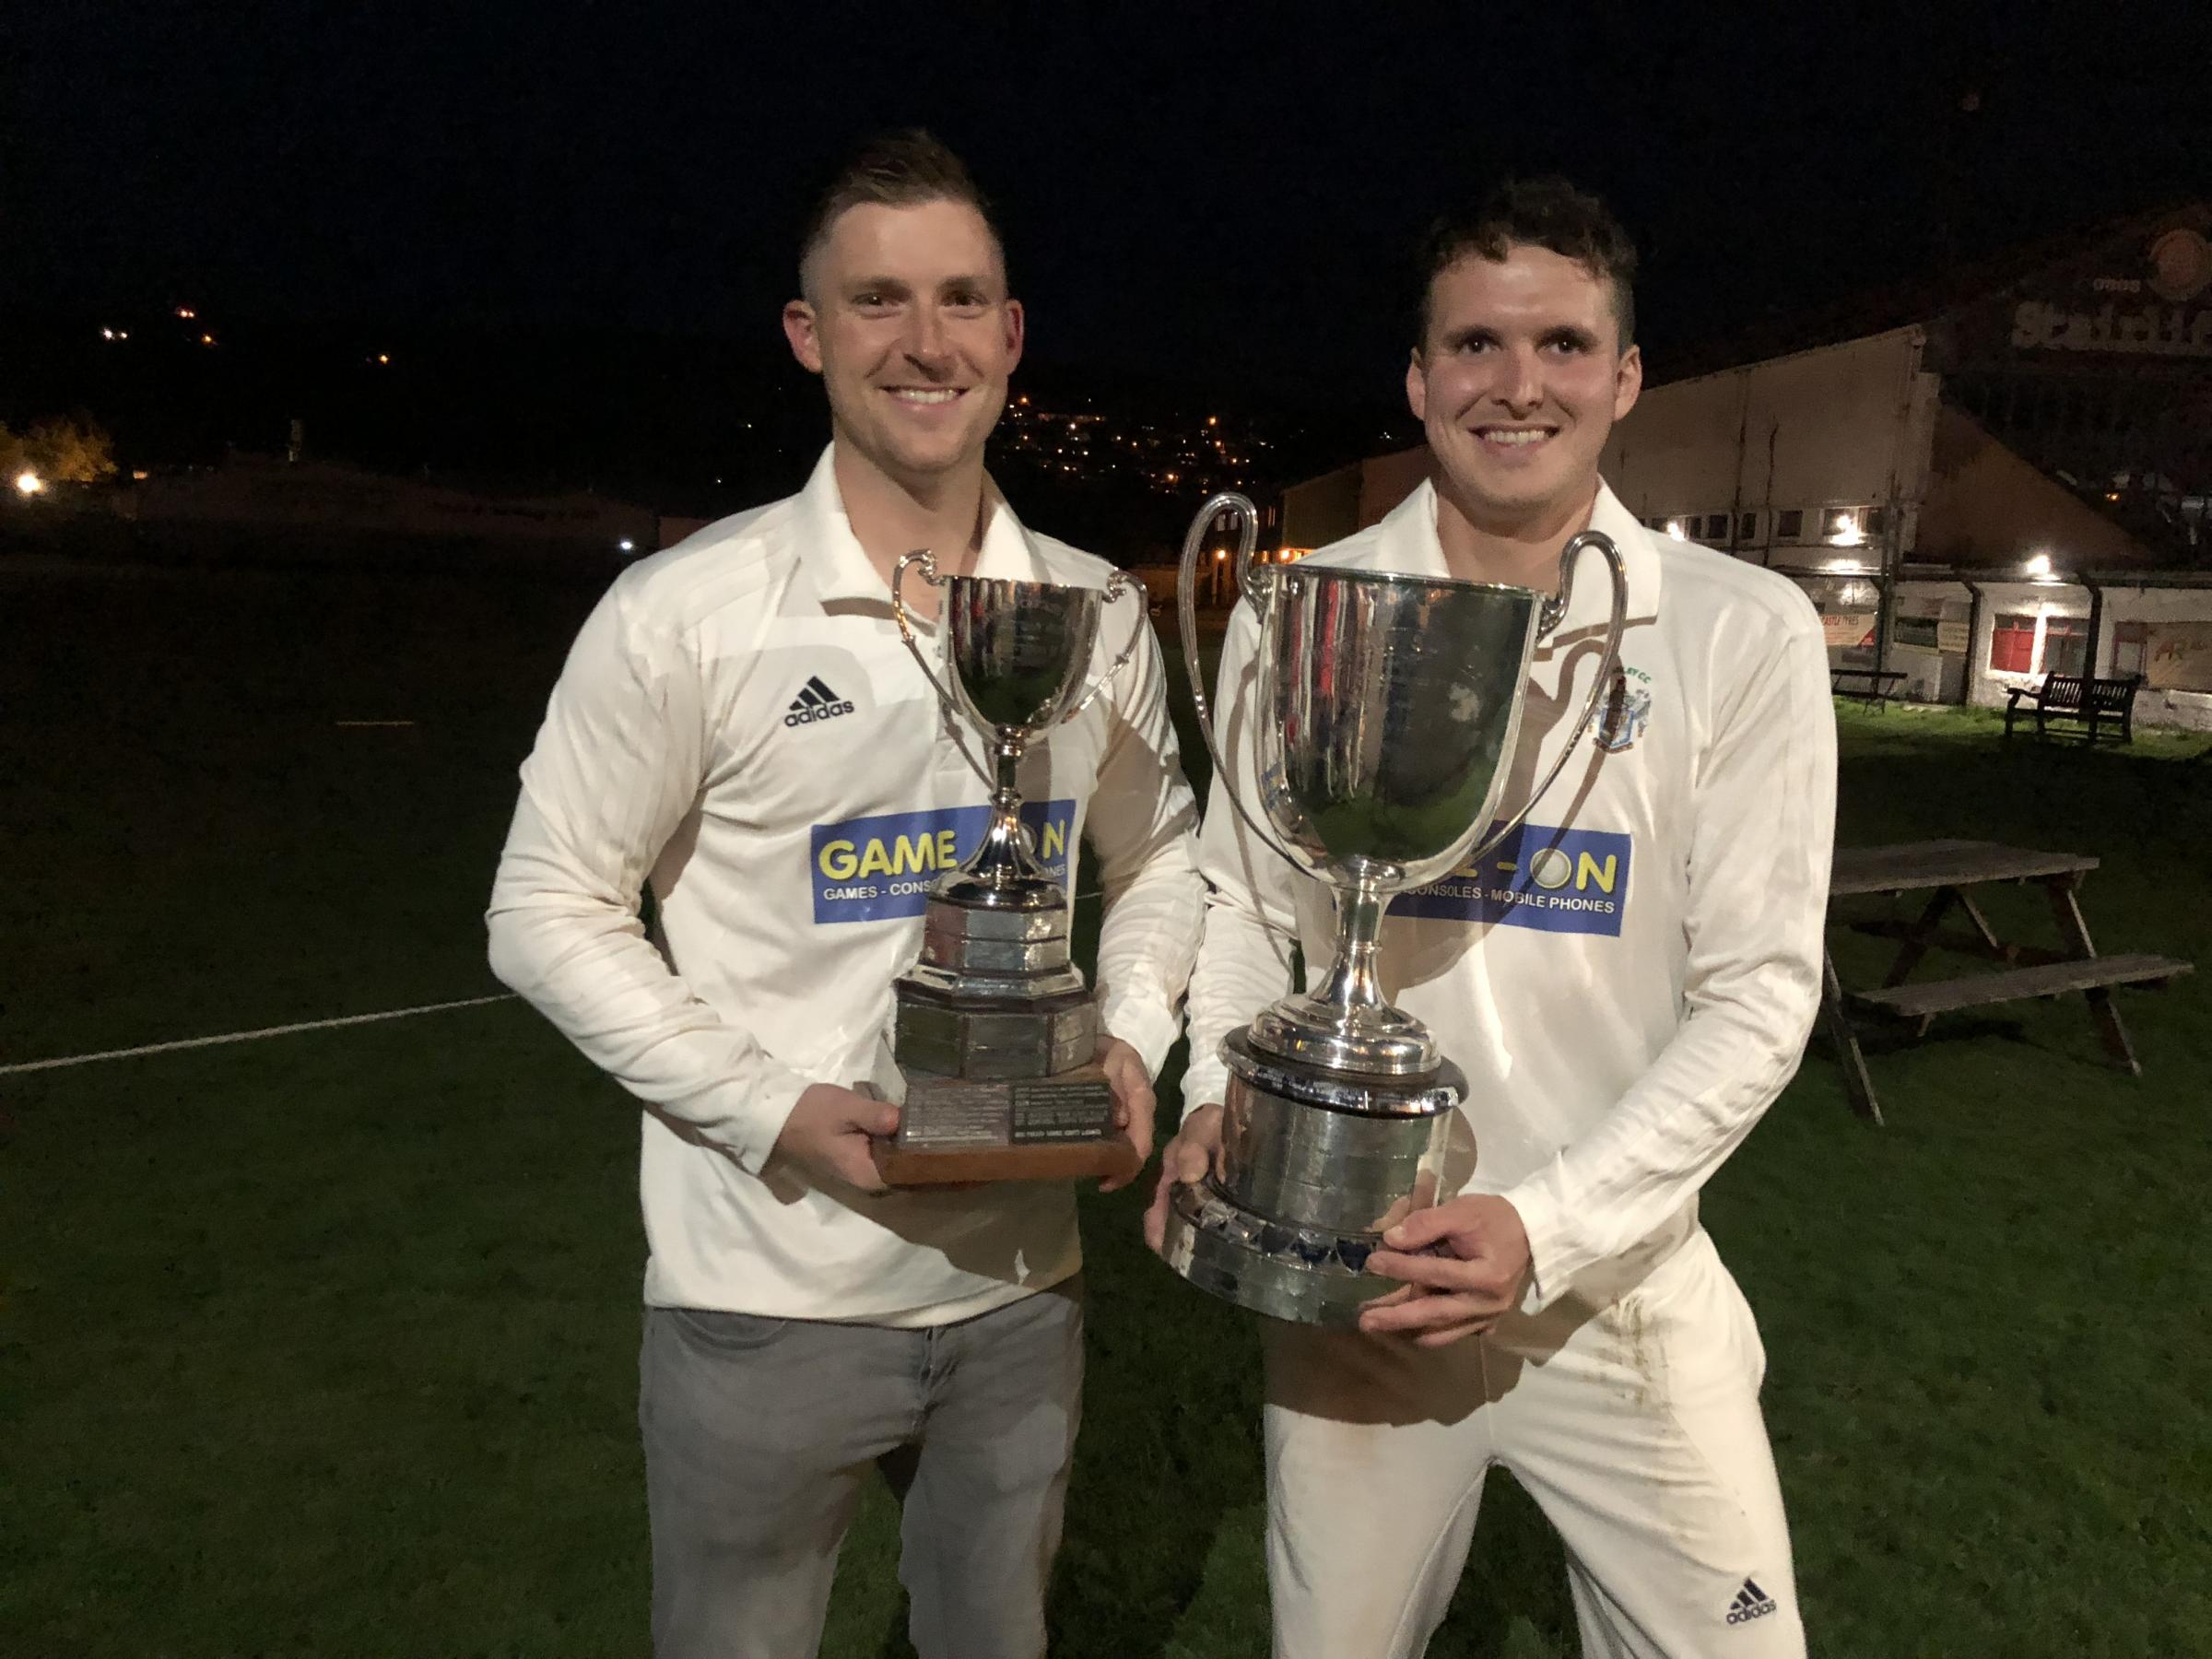 Paul Quinlan (right) proudly holds aloft the Bradford Premier League Championship Two trophy alongside second team captain Alex Towler, whose side won their division too